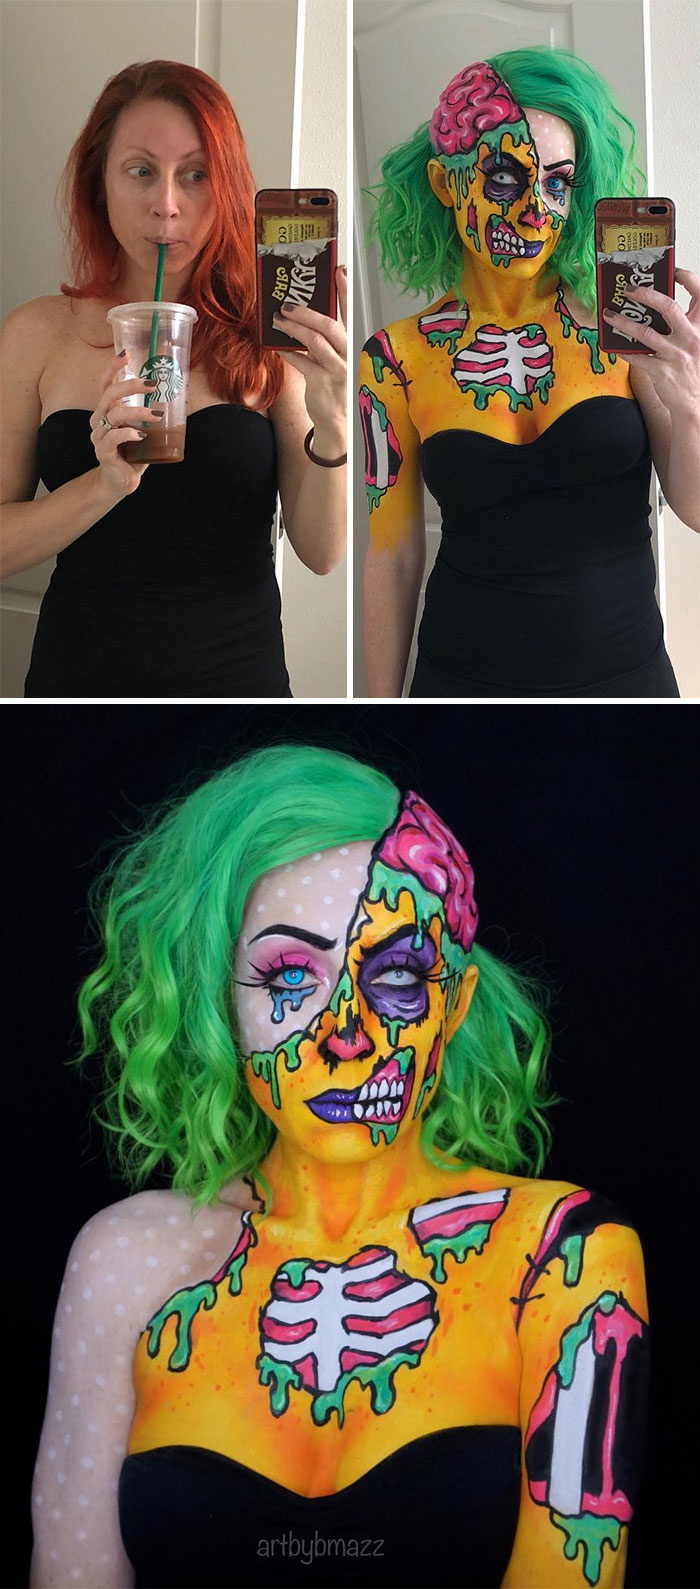 brenna mazzoni epic cosplay transformations pop art zombie